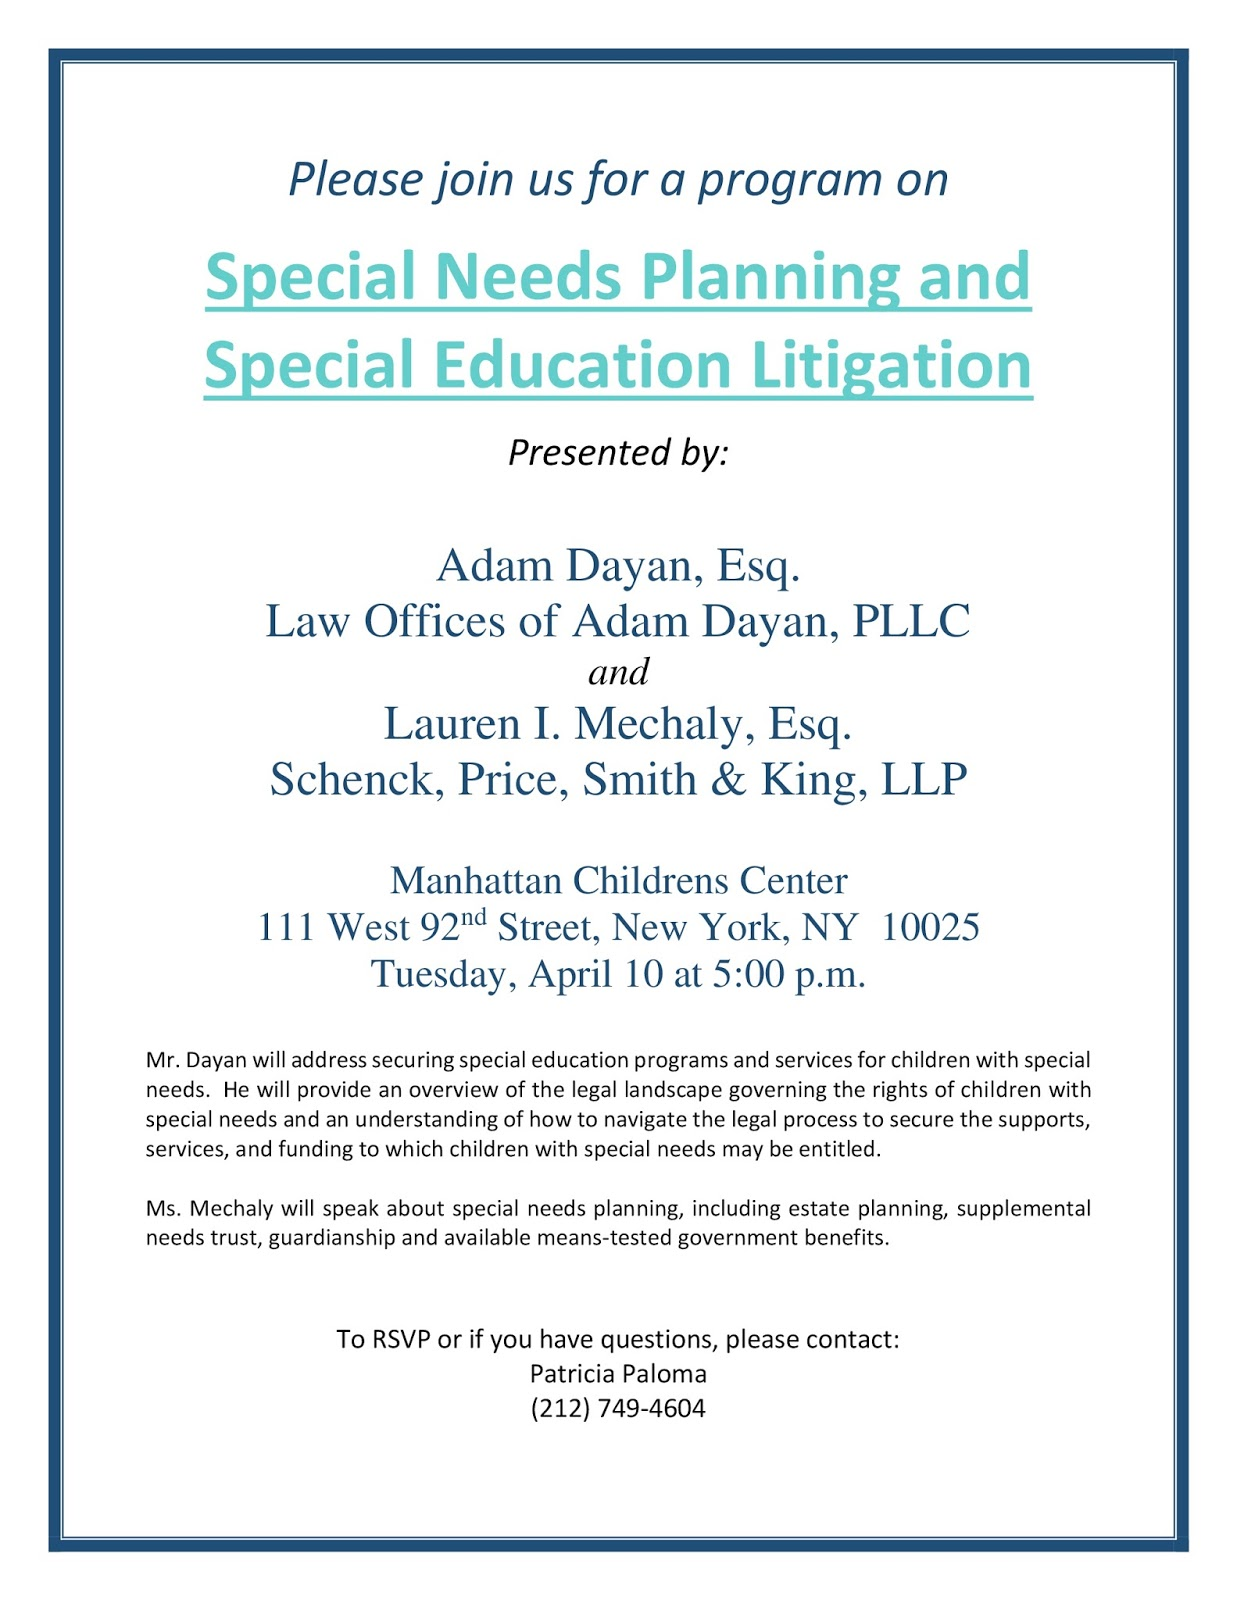 10 Red Flags In Special Education >> Law Offices Of Adam Dayan Special Education News